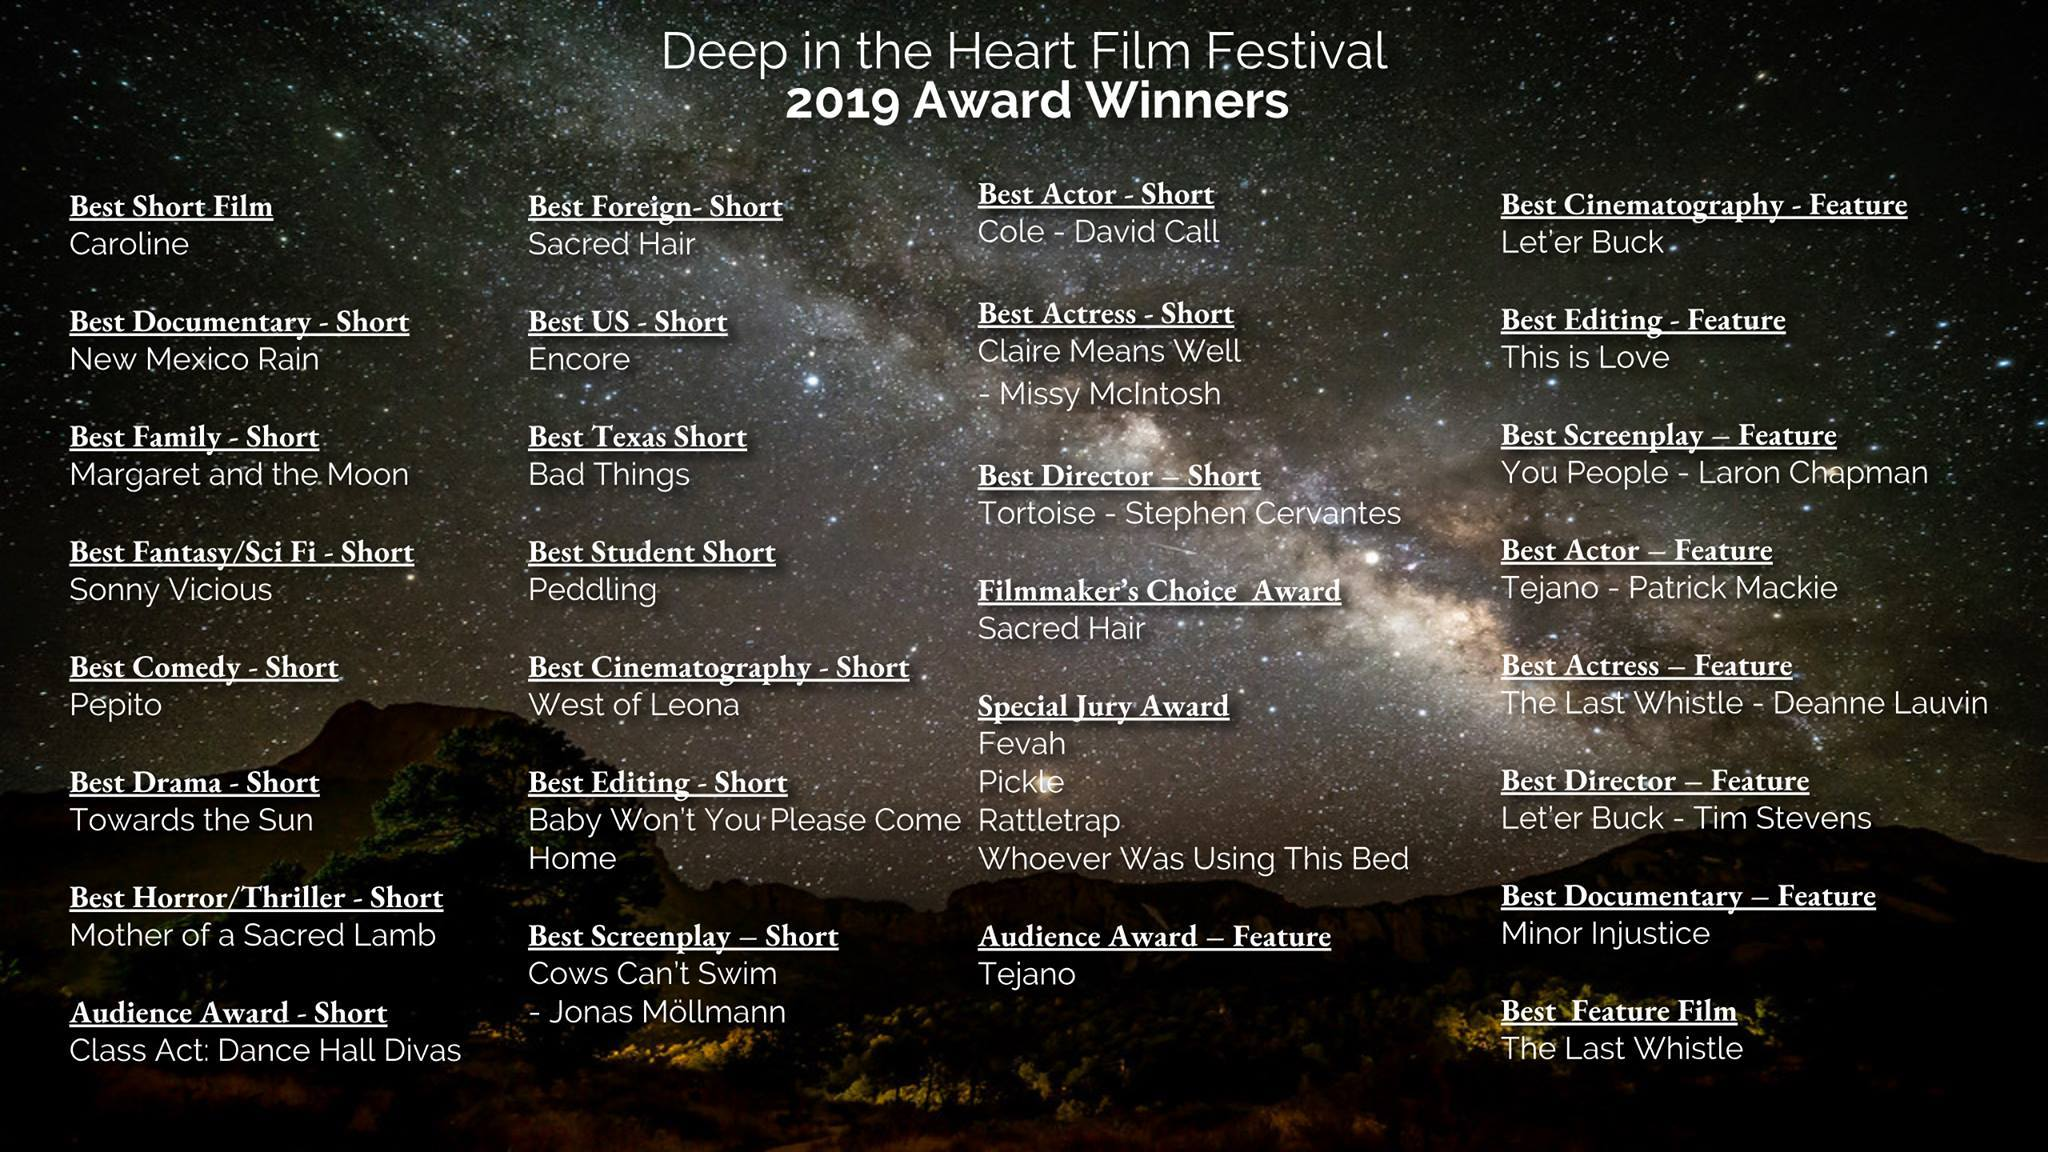 List of winners for Deep in the Heart Film Festival 2019